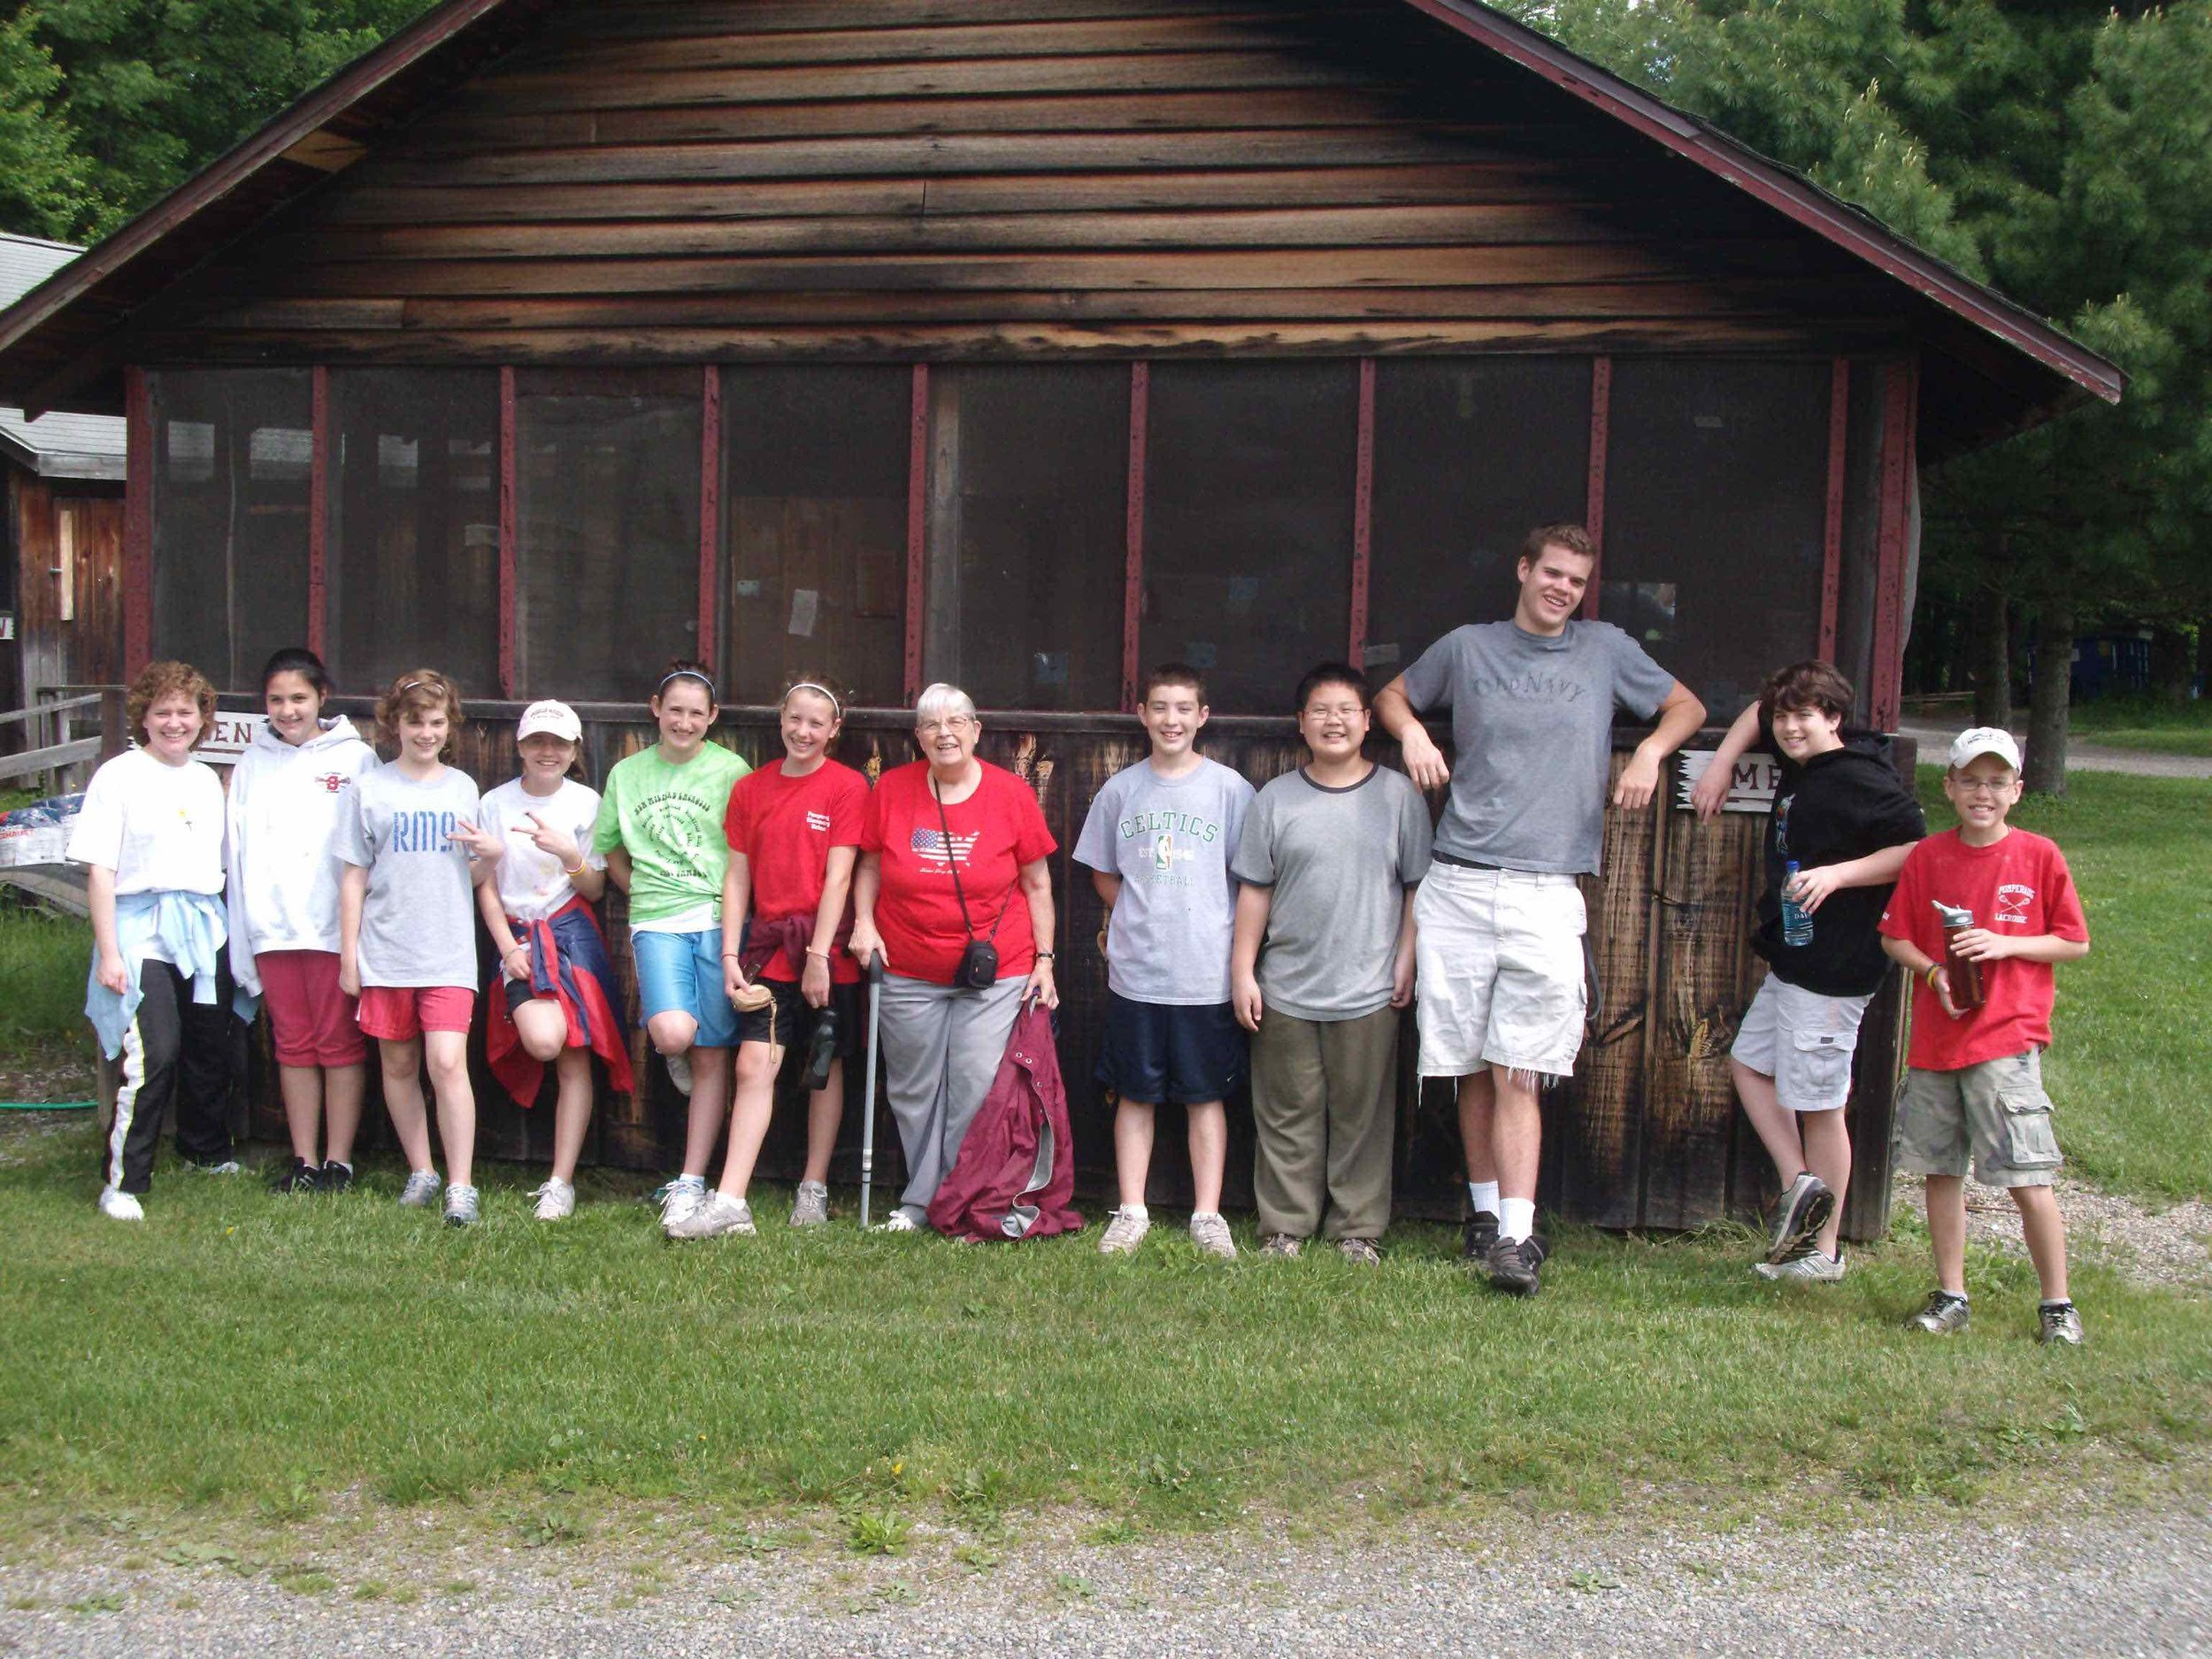 United Church of Christ, Southbury Junior Pilgrim Fellowship Group